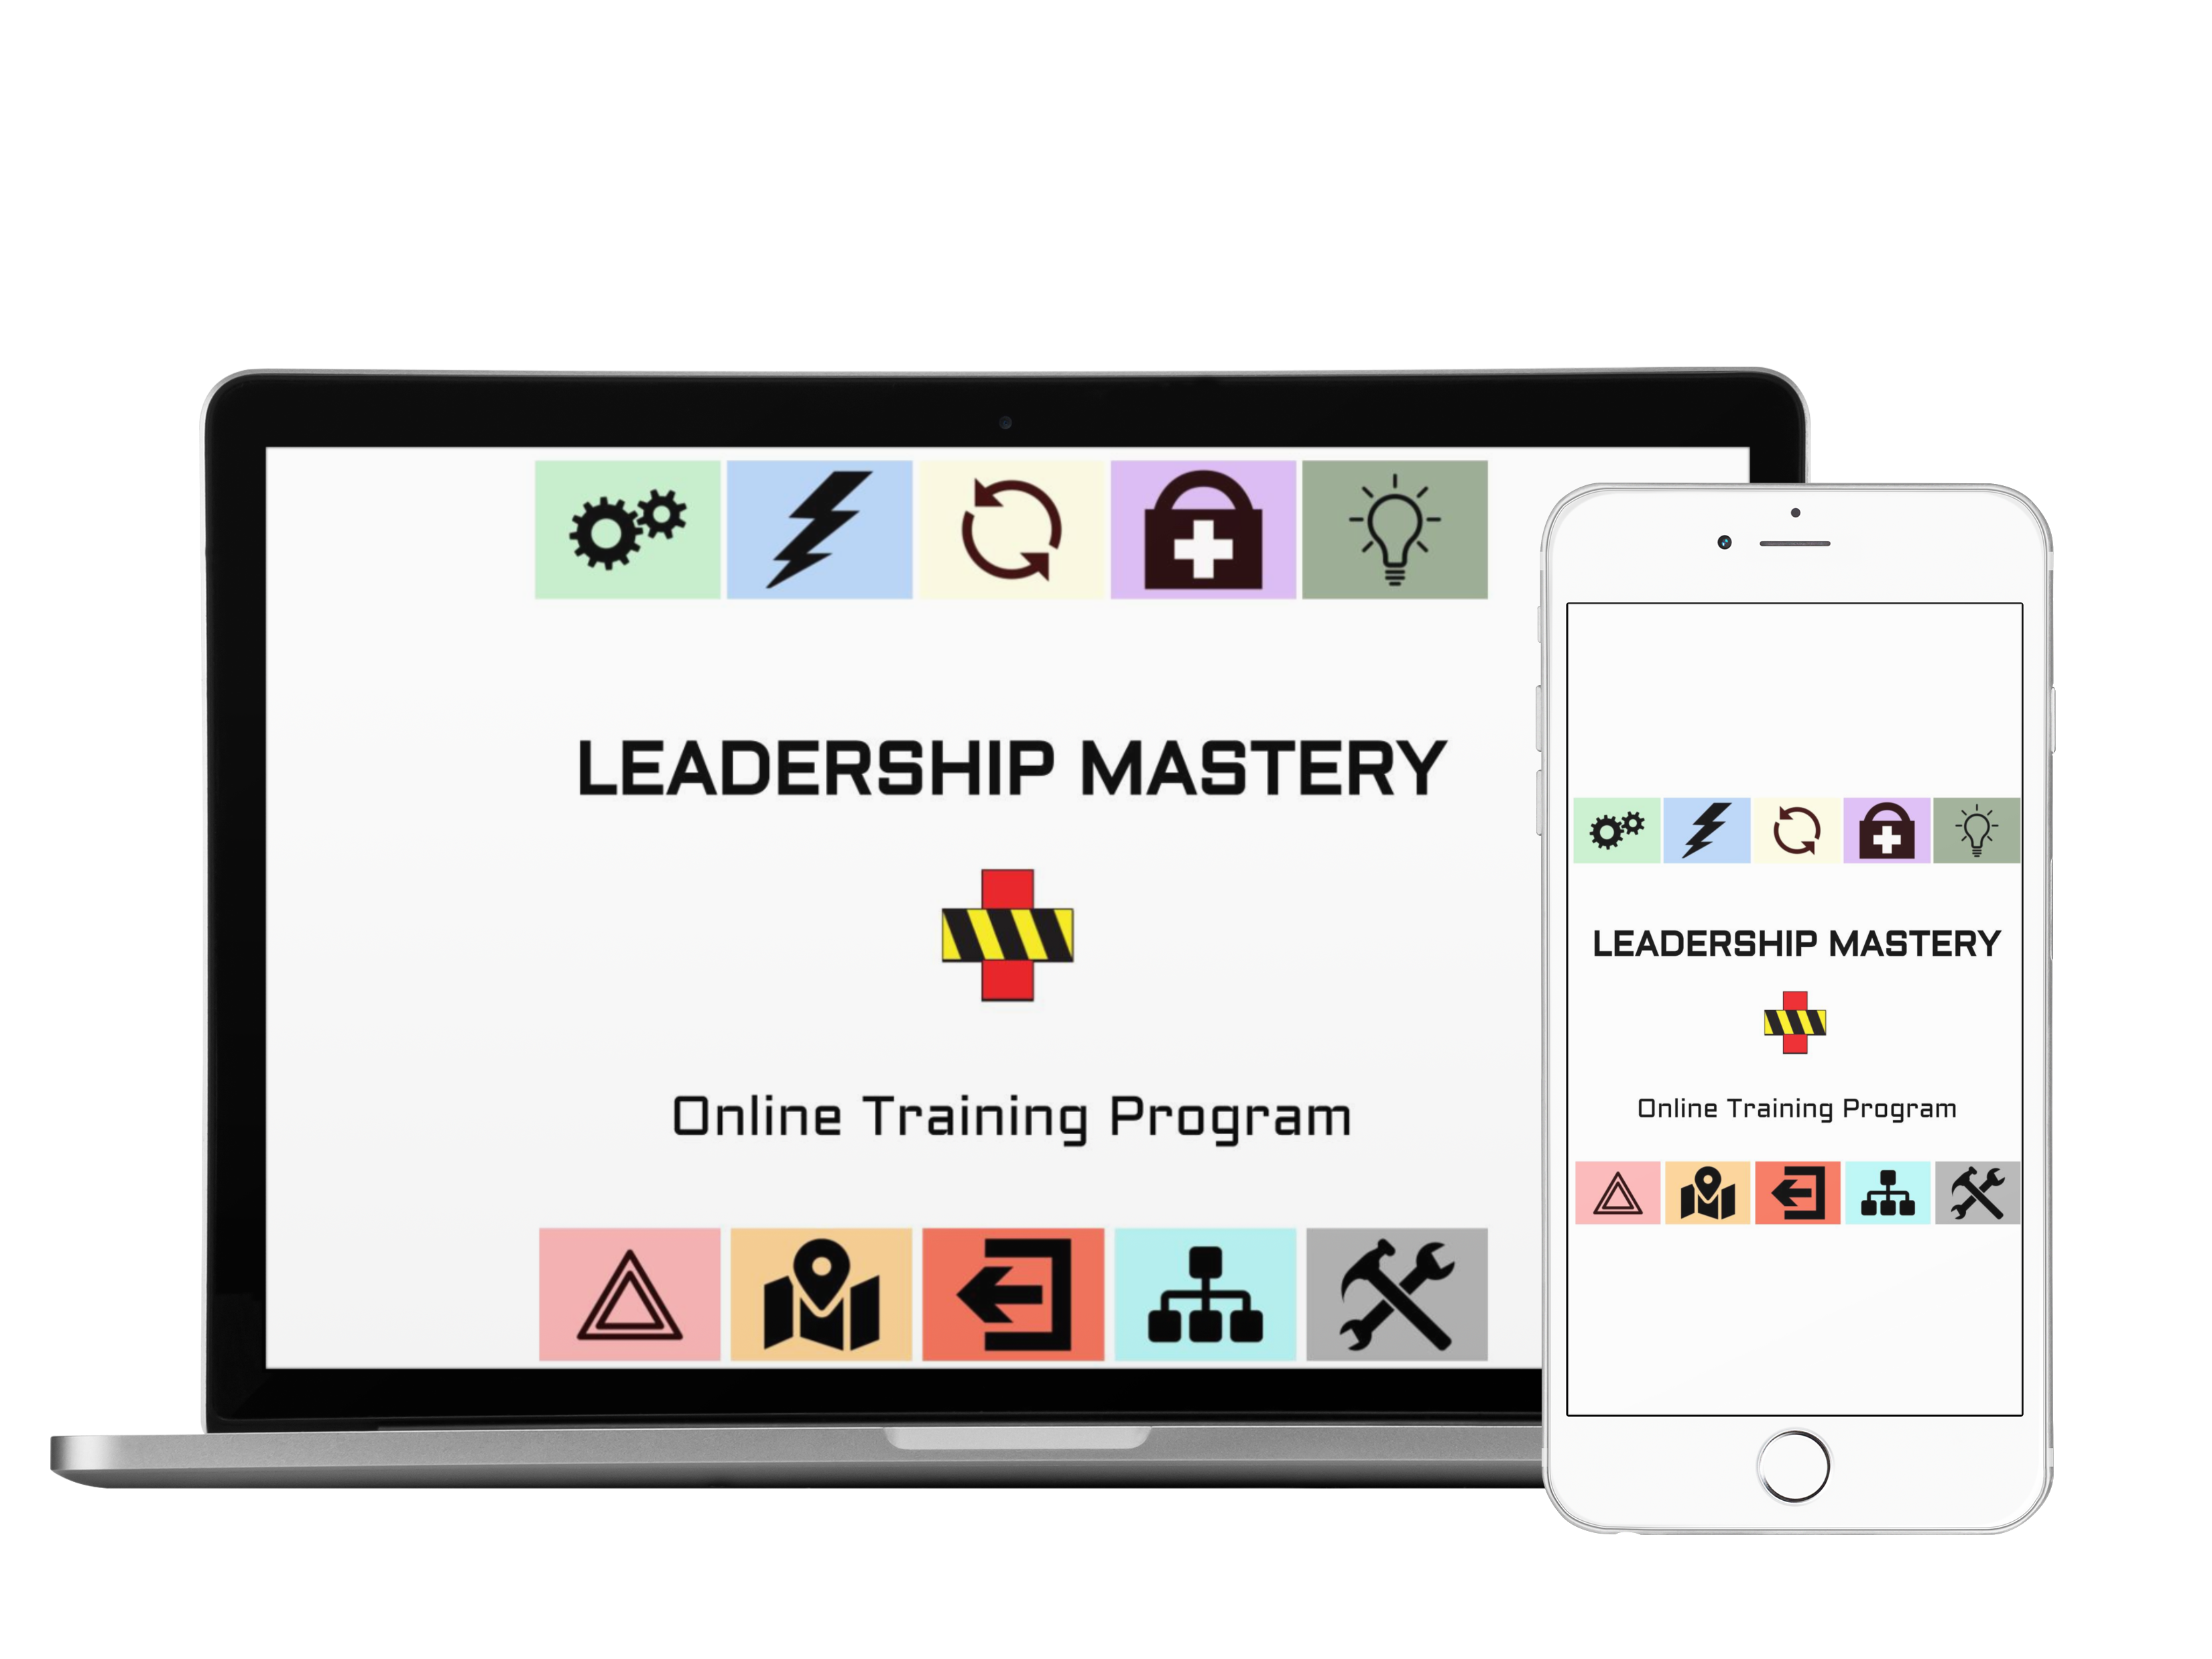 Leadership Mastery by TEAM Solutions